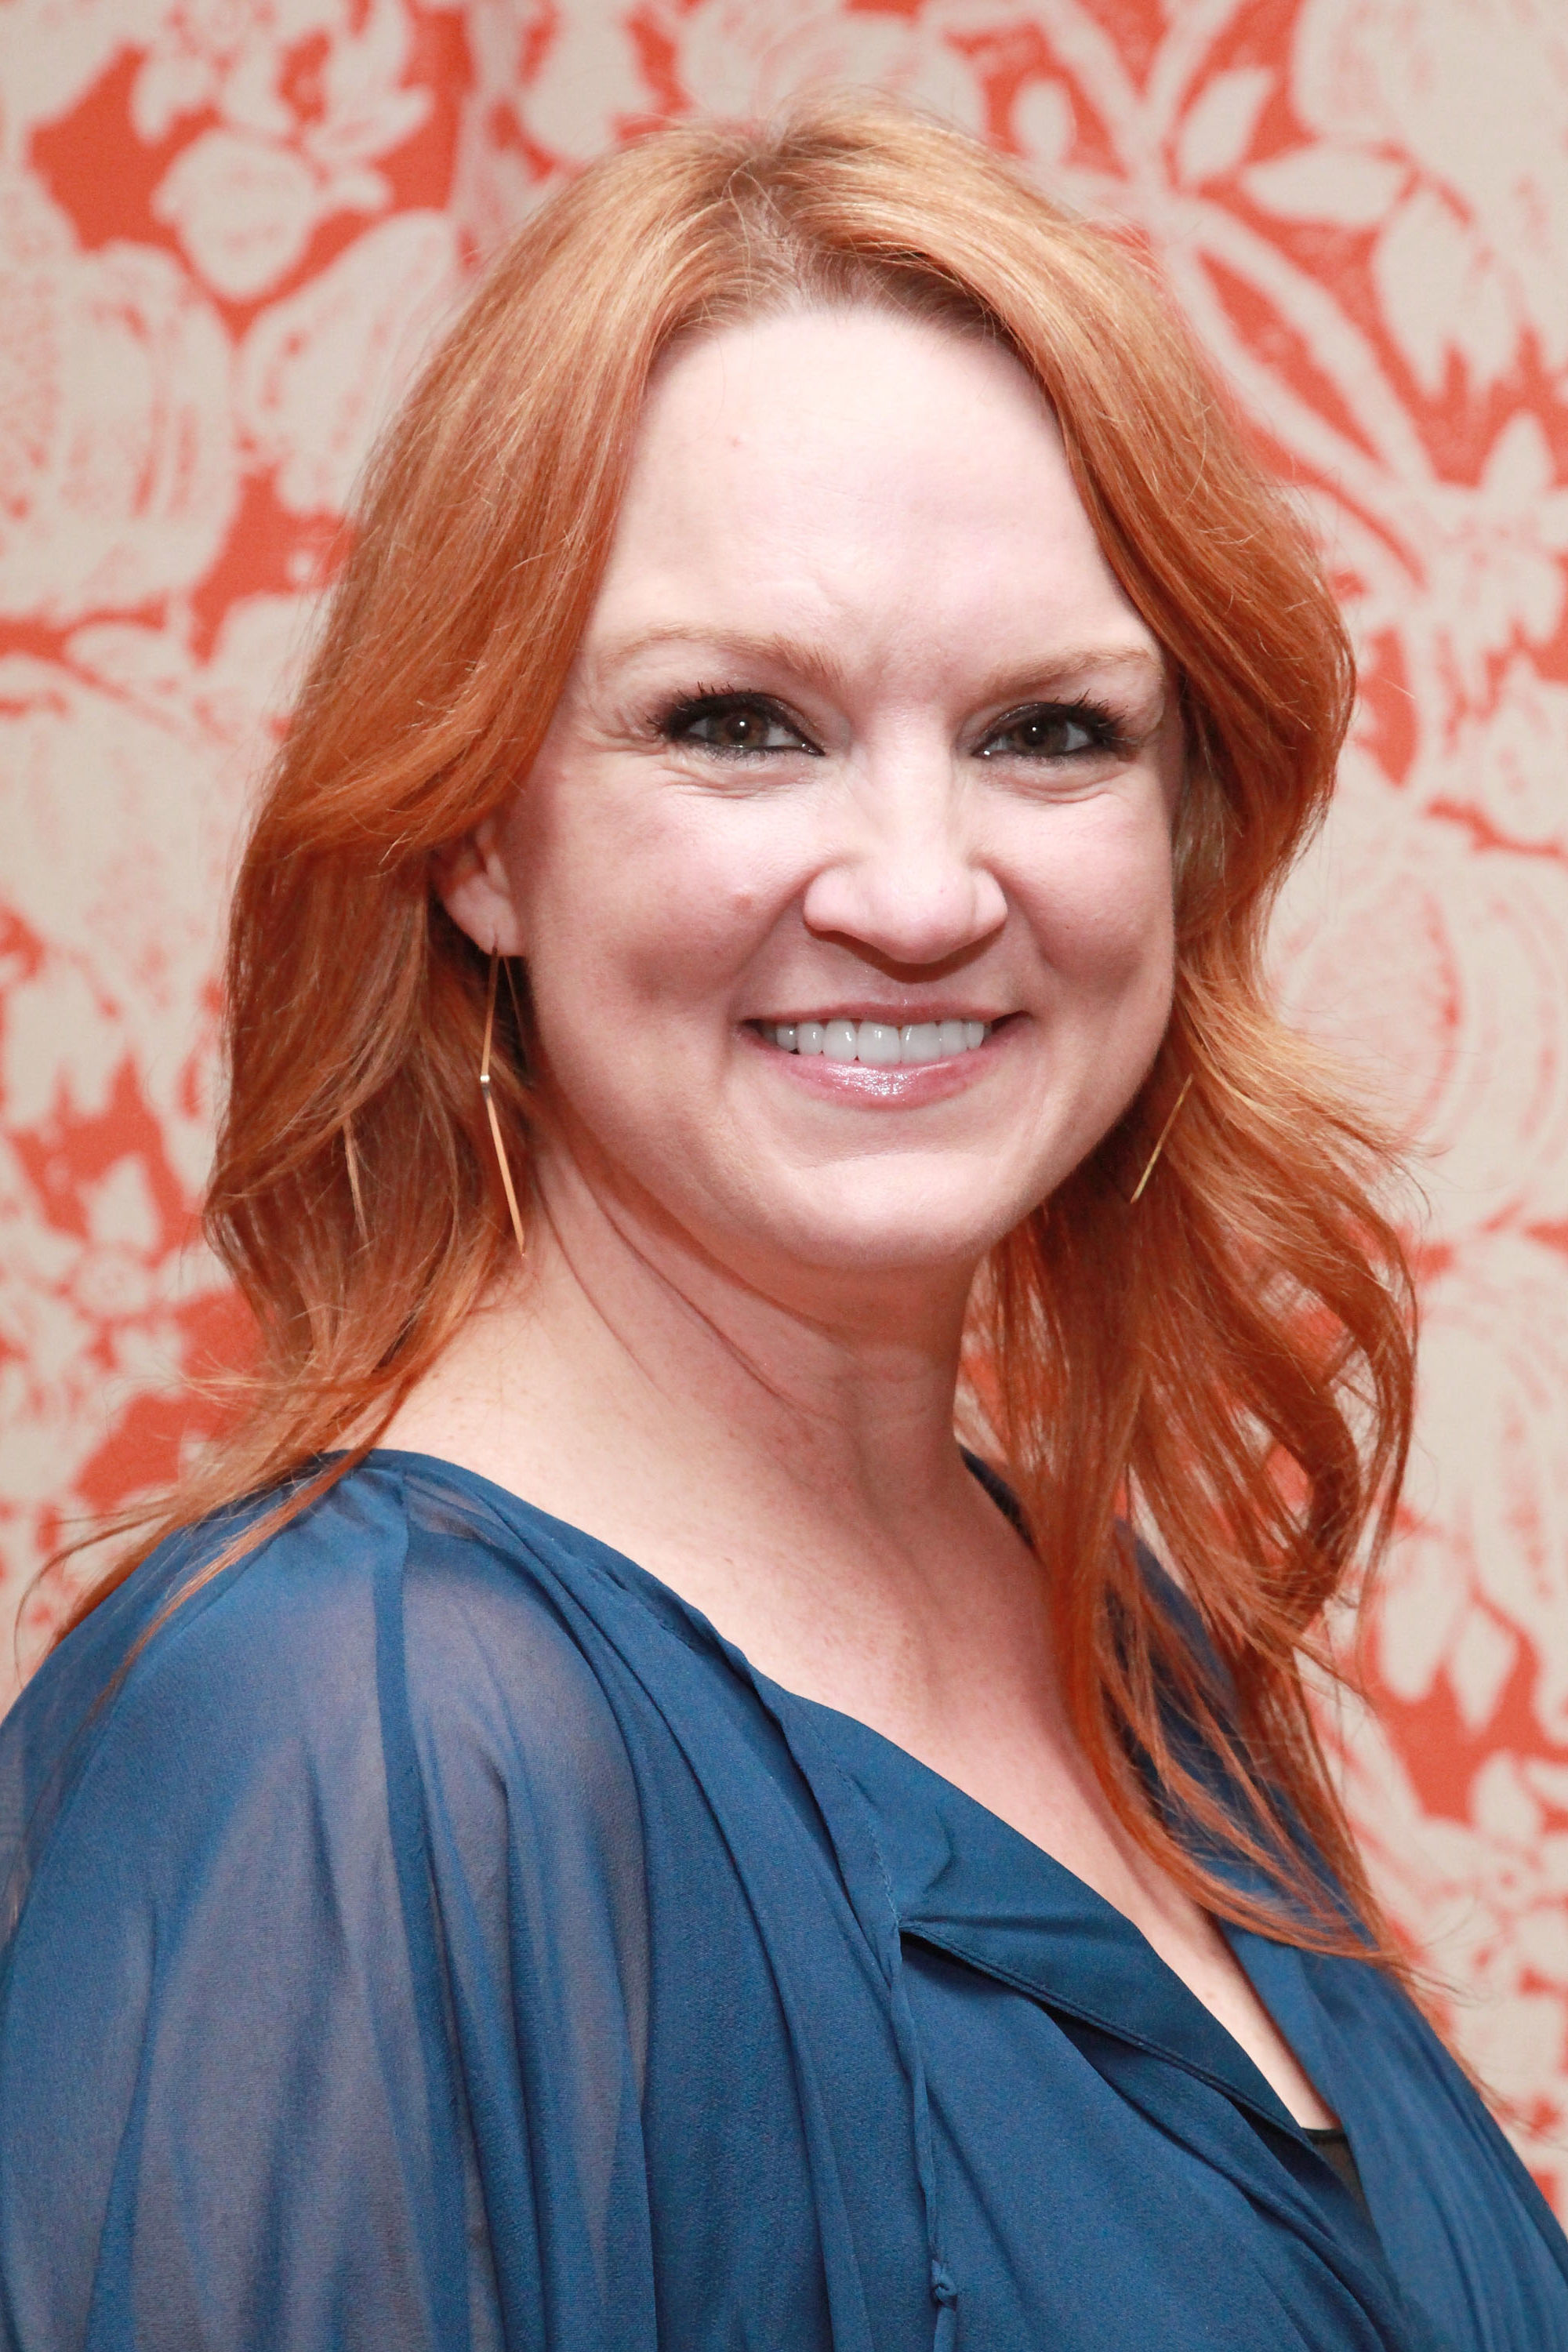 WATCH: Lucky Bride Surprised by Ree Drummond on Her Wedding Day